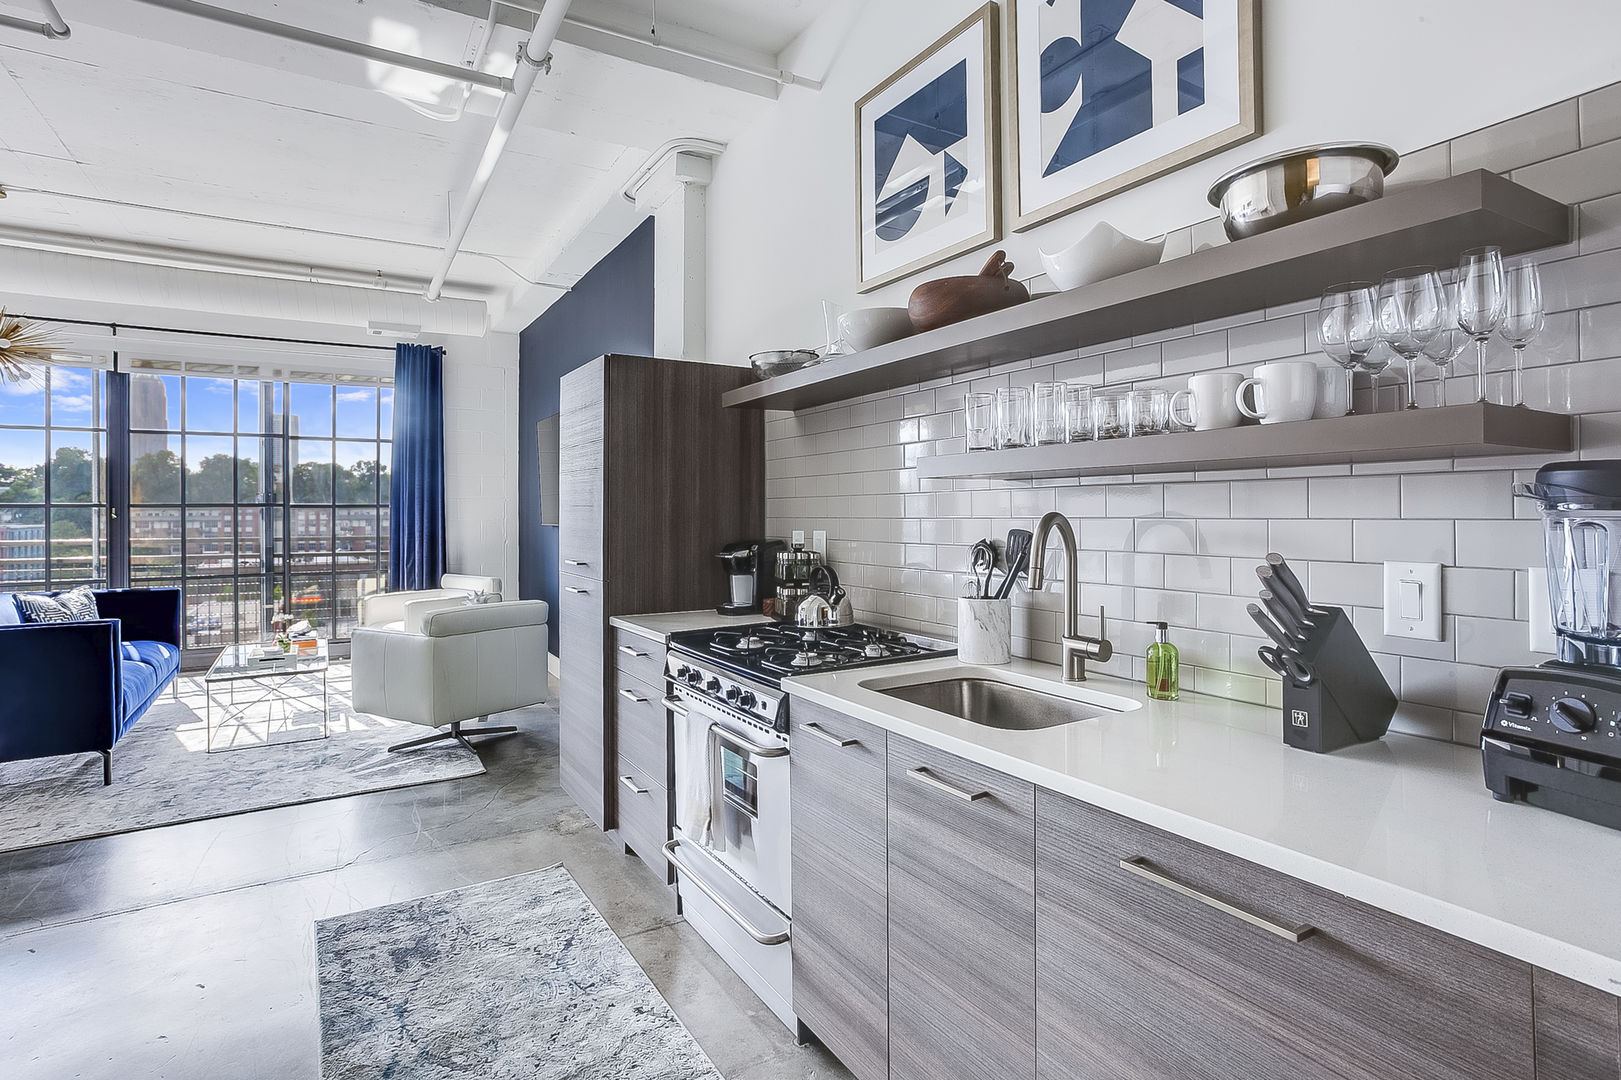 This kitchen at this Ponce Rental features and oven, sink and fridge